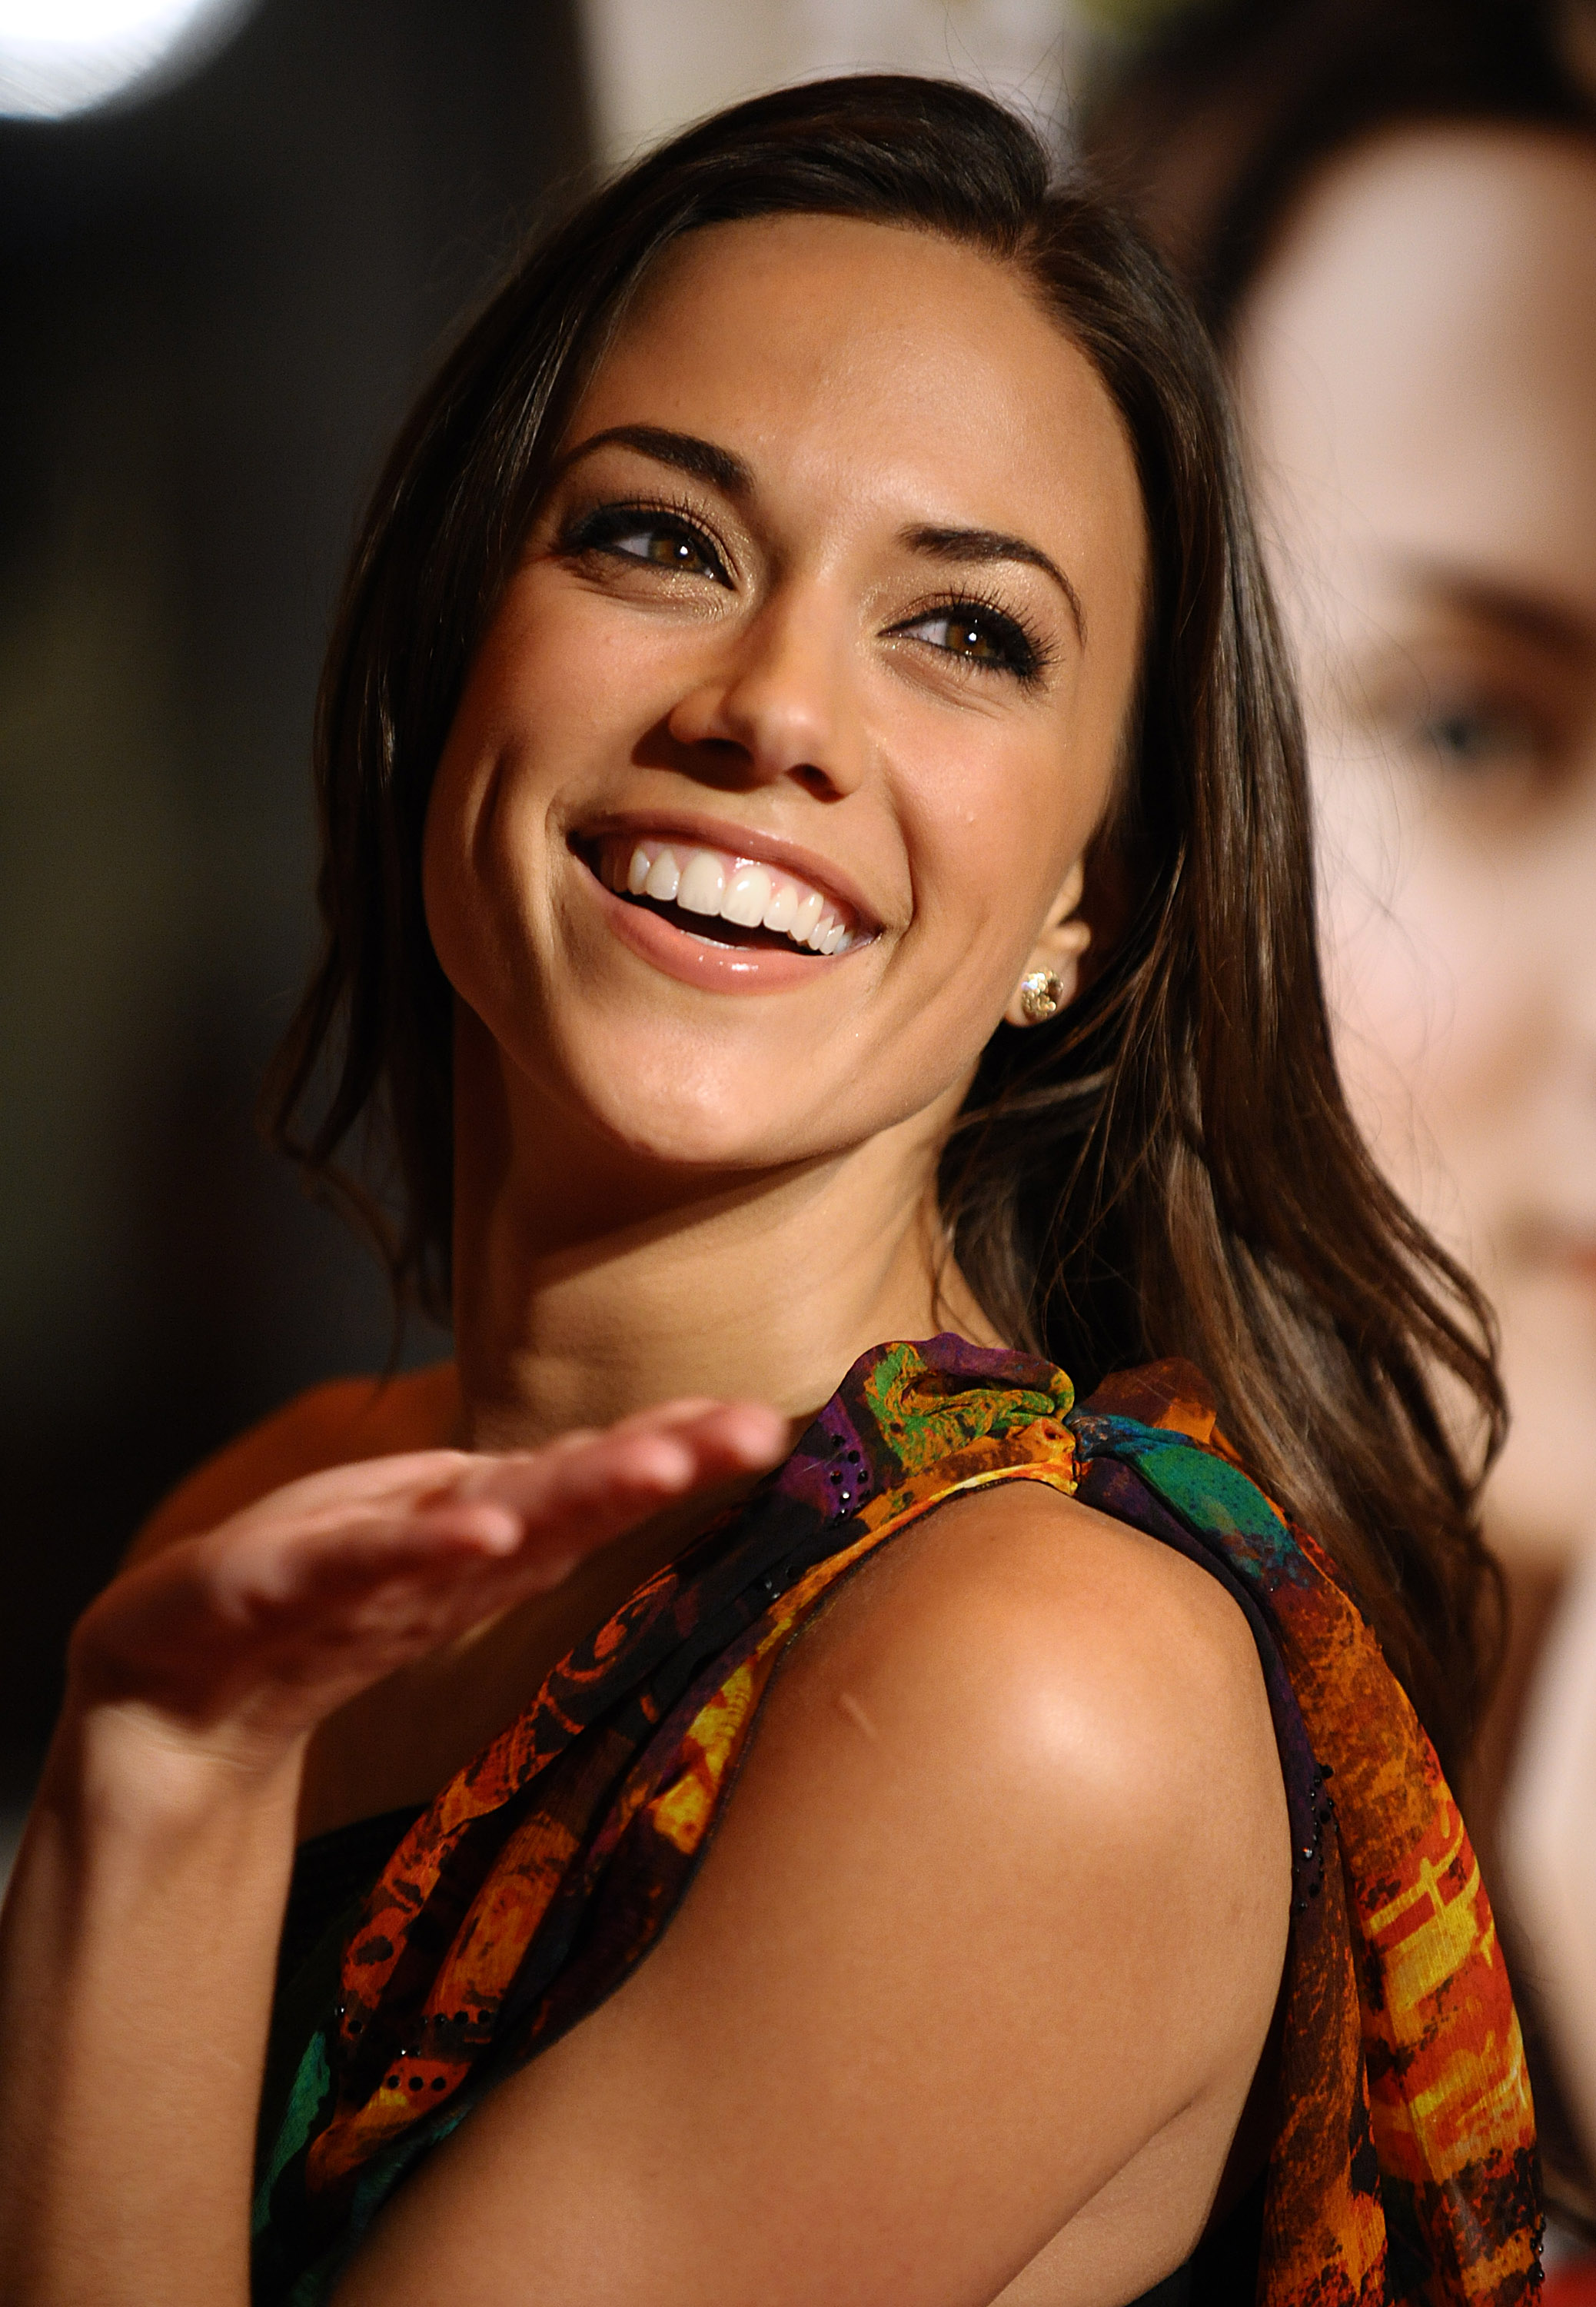 jana kramer wikipediajana kramer - i got the boy, jana kramer instagram, jana kramer one tree hill, jana kramer - whiskey, jana kramer - circles, jana kramer gif, jana kramer - why ya wanna, jana kramer new album, jana kramer wiki, jana kramer - i hope it rains, jana kramer music videos, jana kramer wikipedia, jana kramer origin, jana kramer source, jana kramer - boomerang, jana kramer - circles lyrics, jana kramer wdw, jana kramer insta, jana kramer and gleb savchenko, jana kramer i won't give up